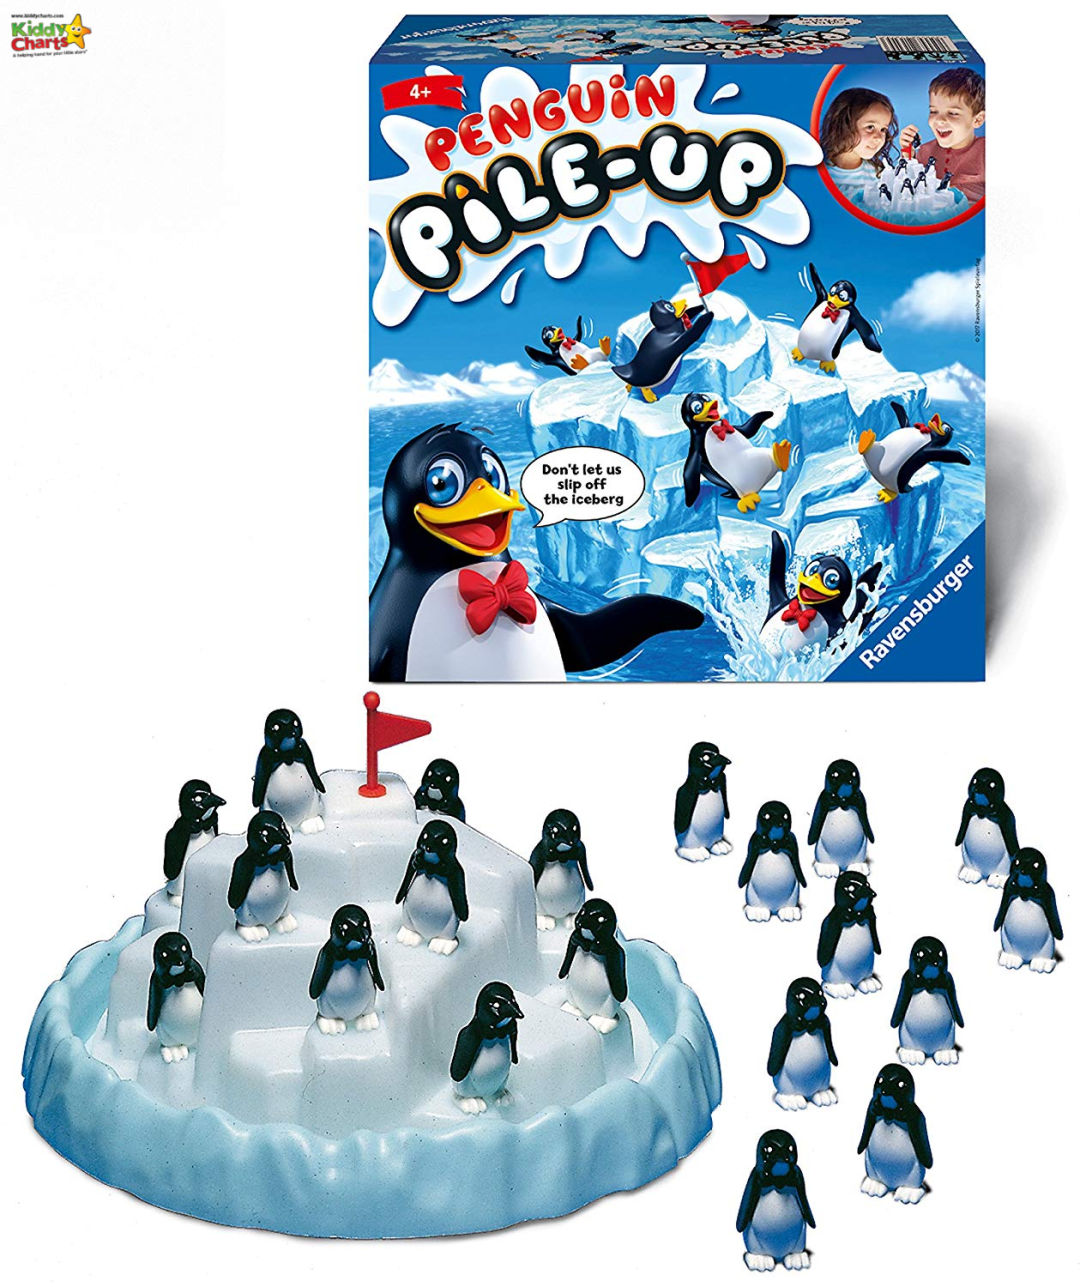 Penguin pile up game - boredom busters gift guide